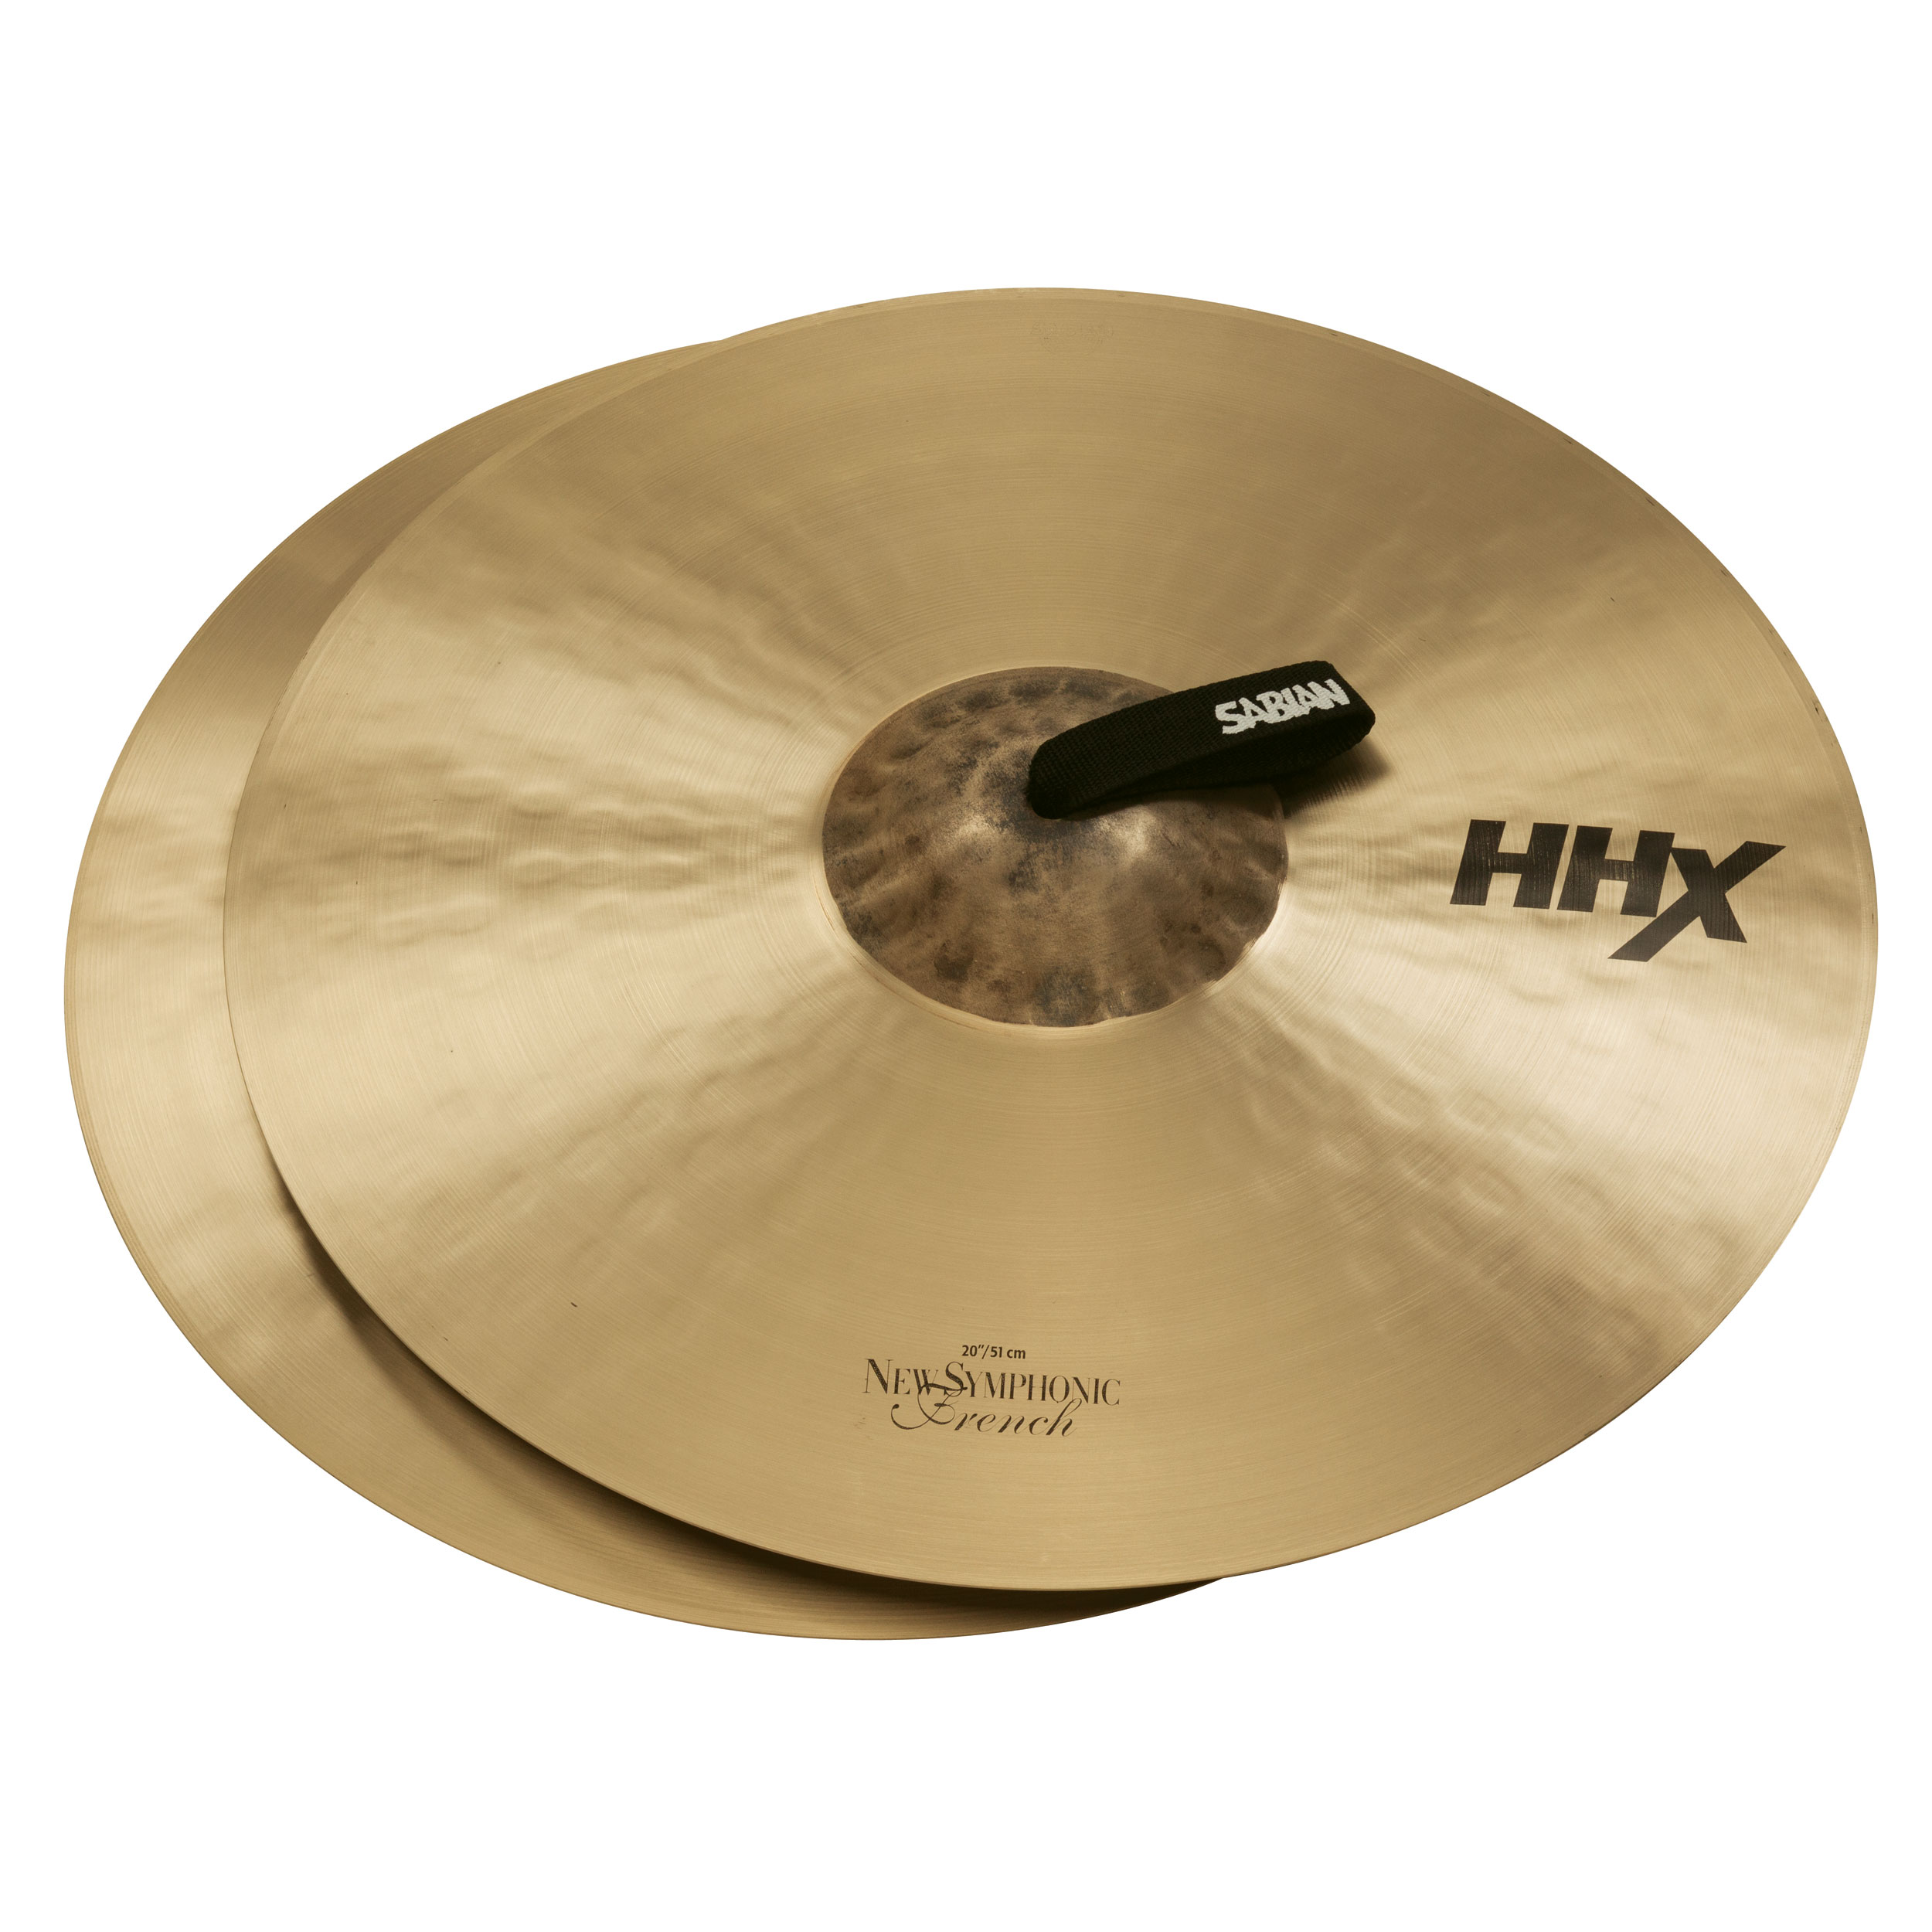 "Sabian 20"" HHX New Symphonic French Crash Cymbal Pair"